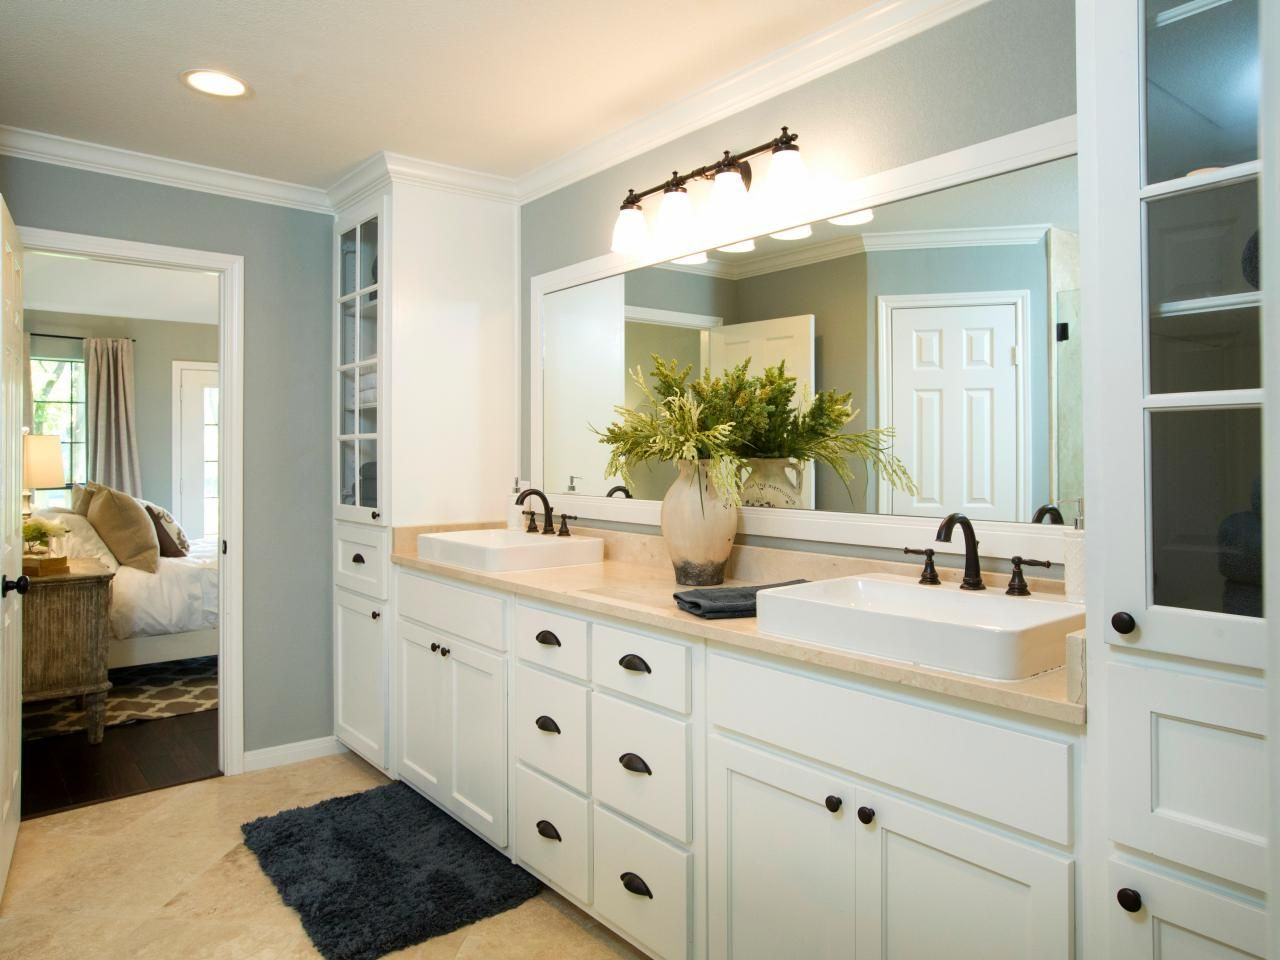 Under-Sink Storage Options | Bath, Storage and Sinks